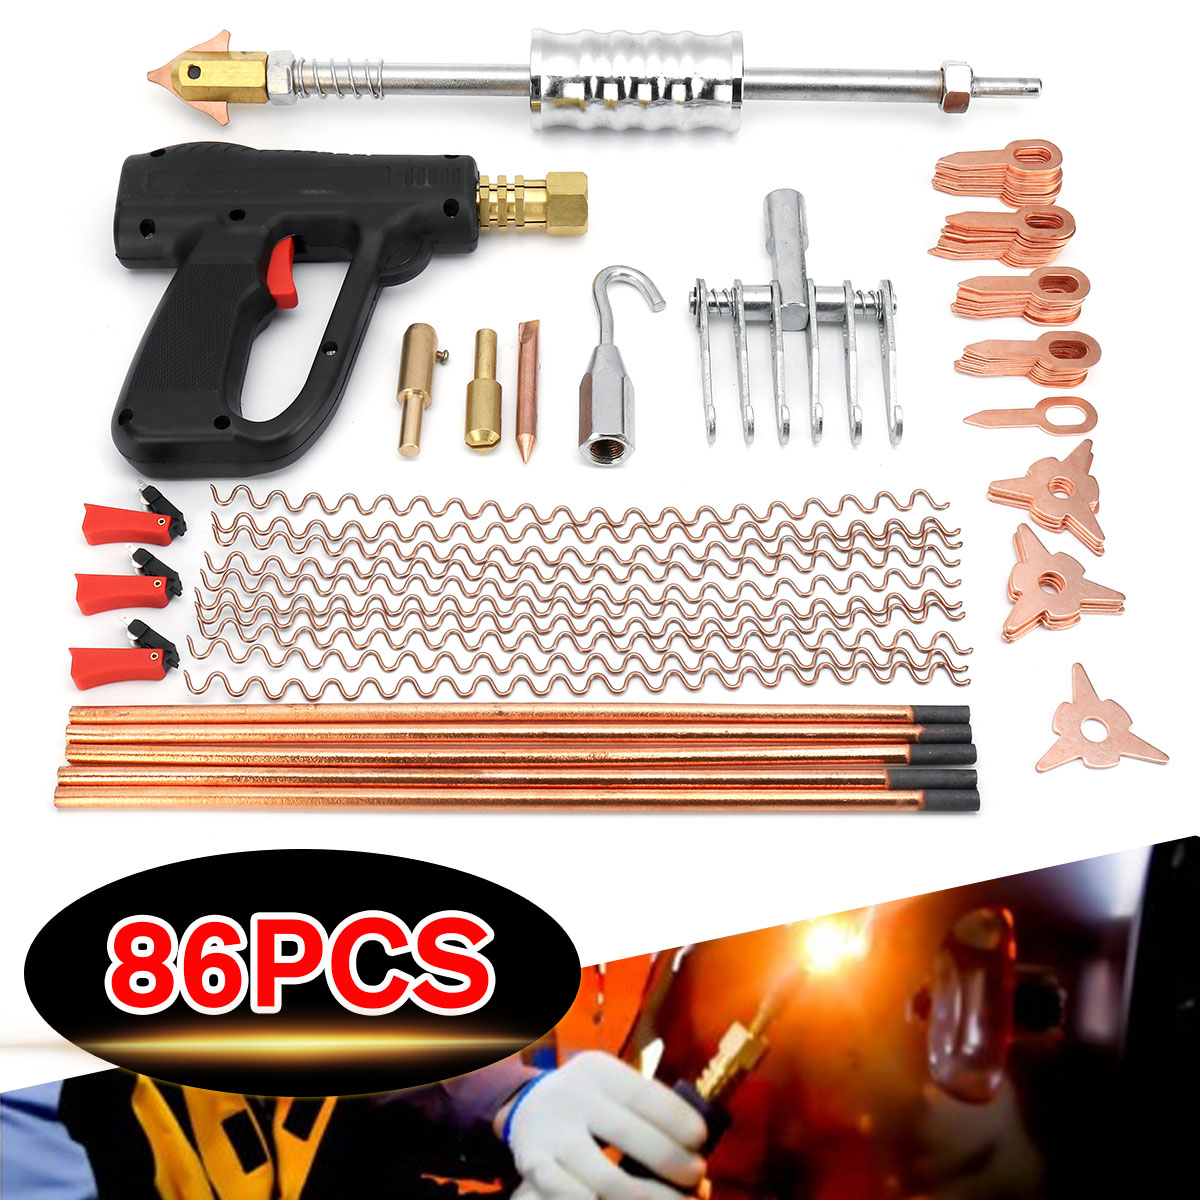 86Pcs Dent Puller Kit Car Body Dent Spot Repair Device Welder Stud Weld Welding Tools Kit